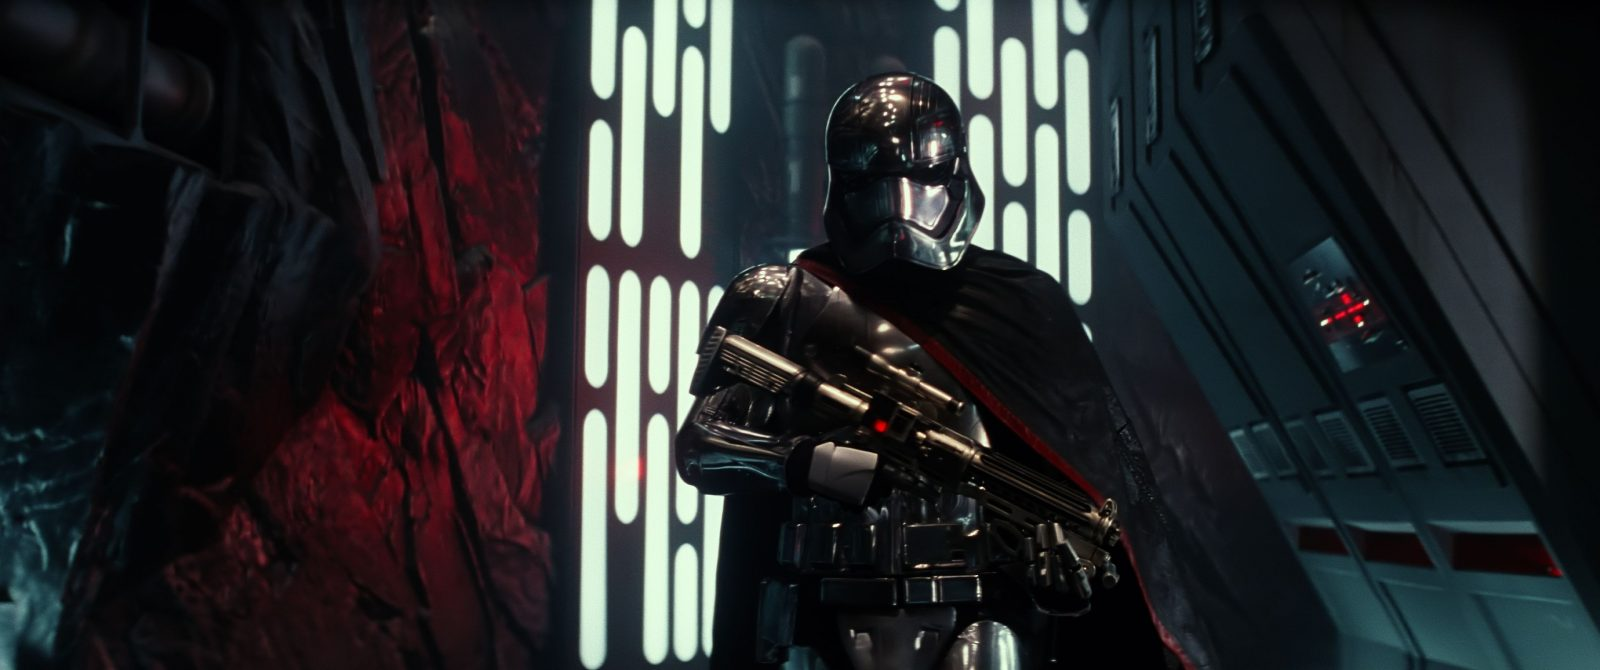 Star Wars VII The Force Awakens 21 - Captain Phasma walks